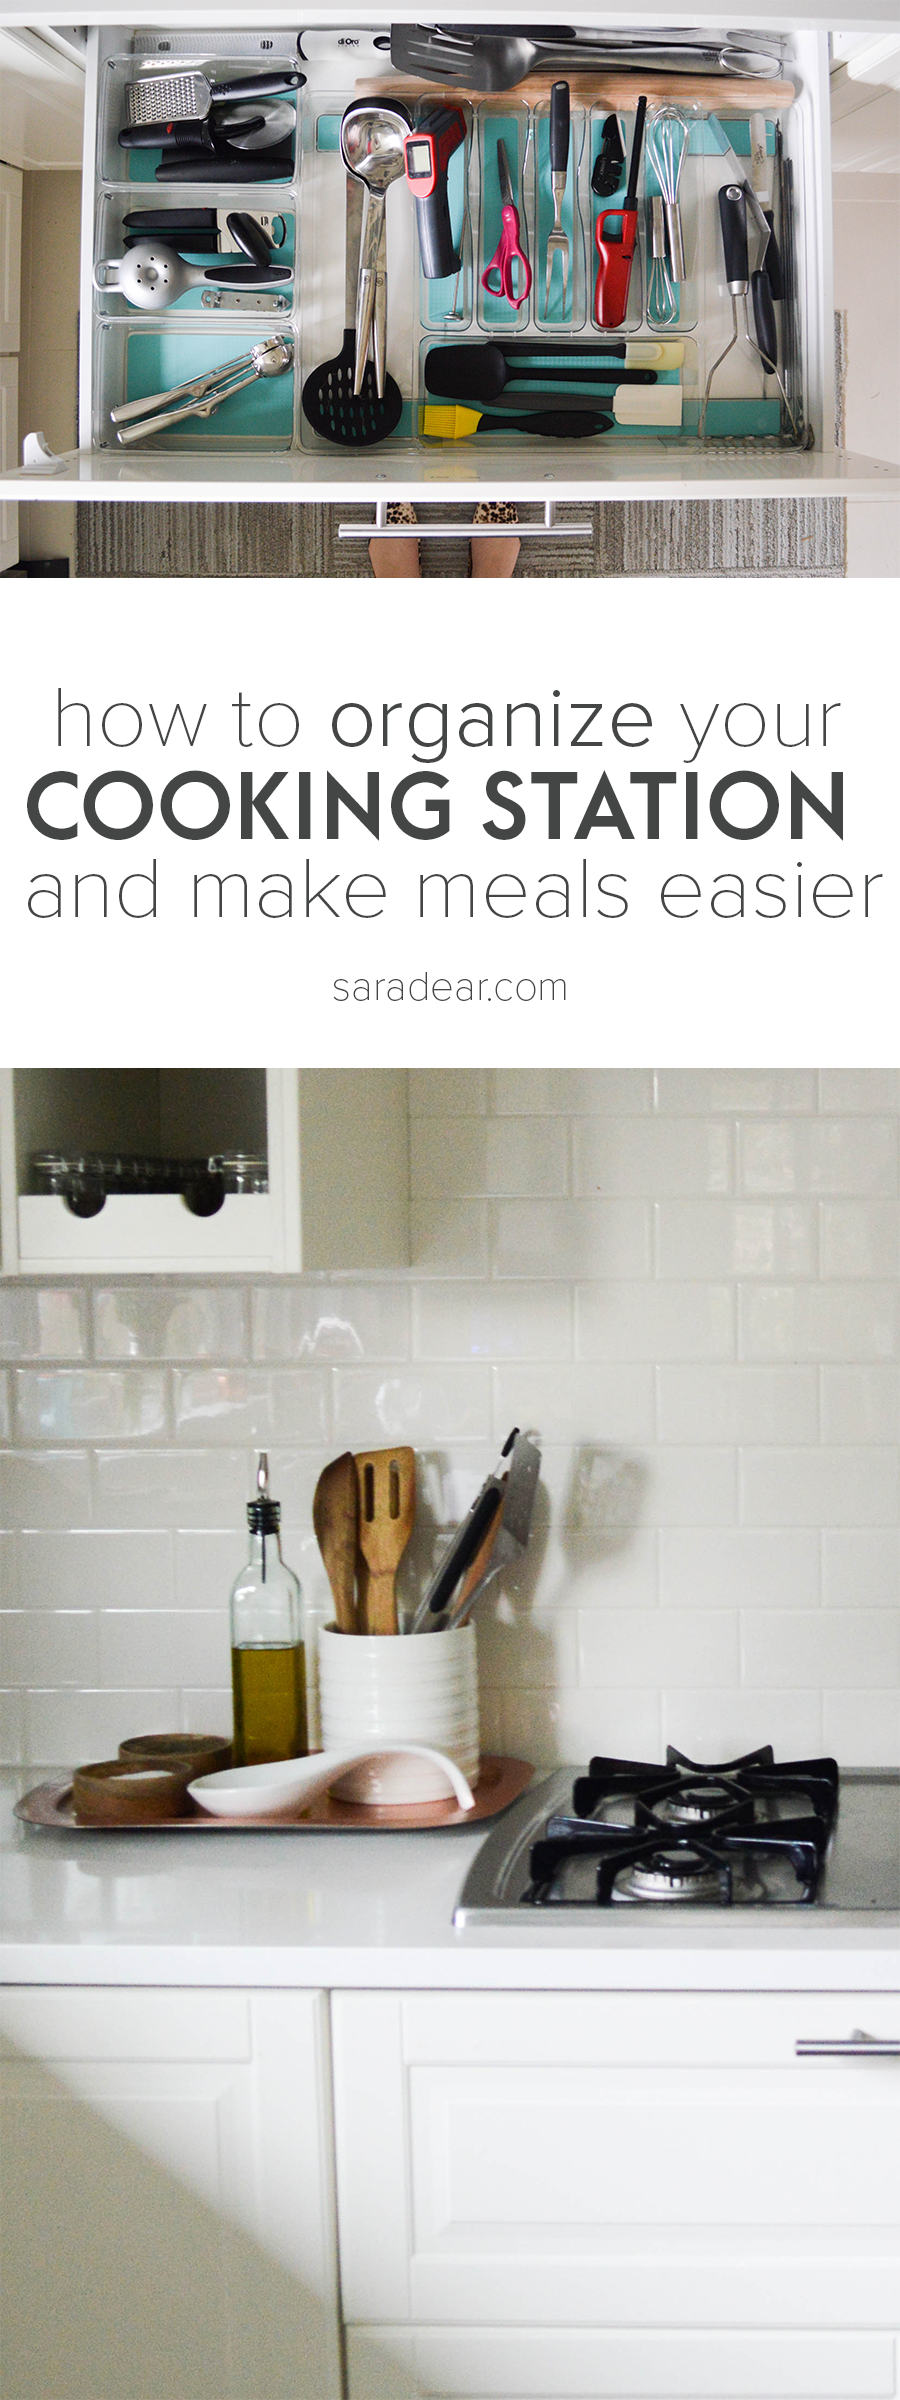 how to organize around stove cooking station.png